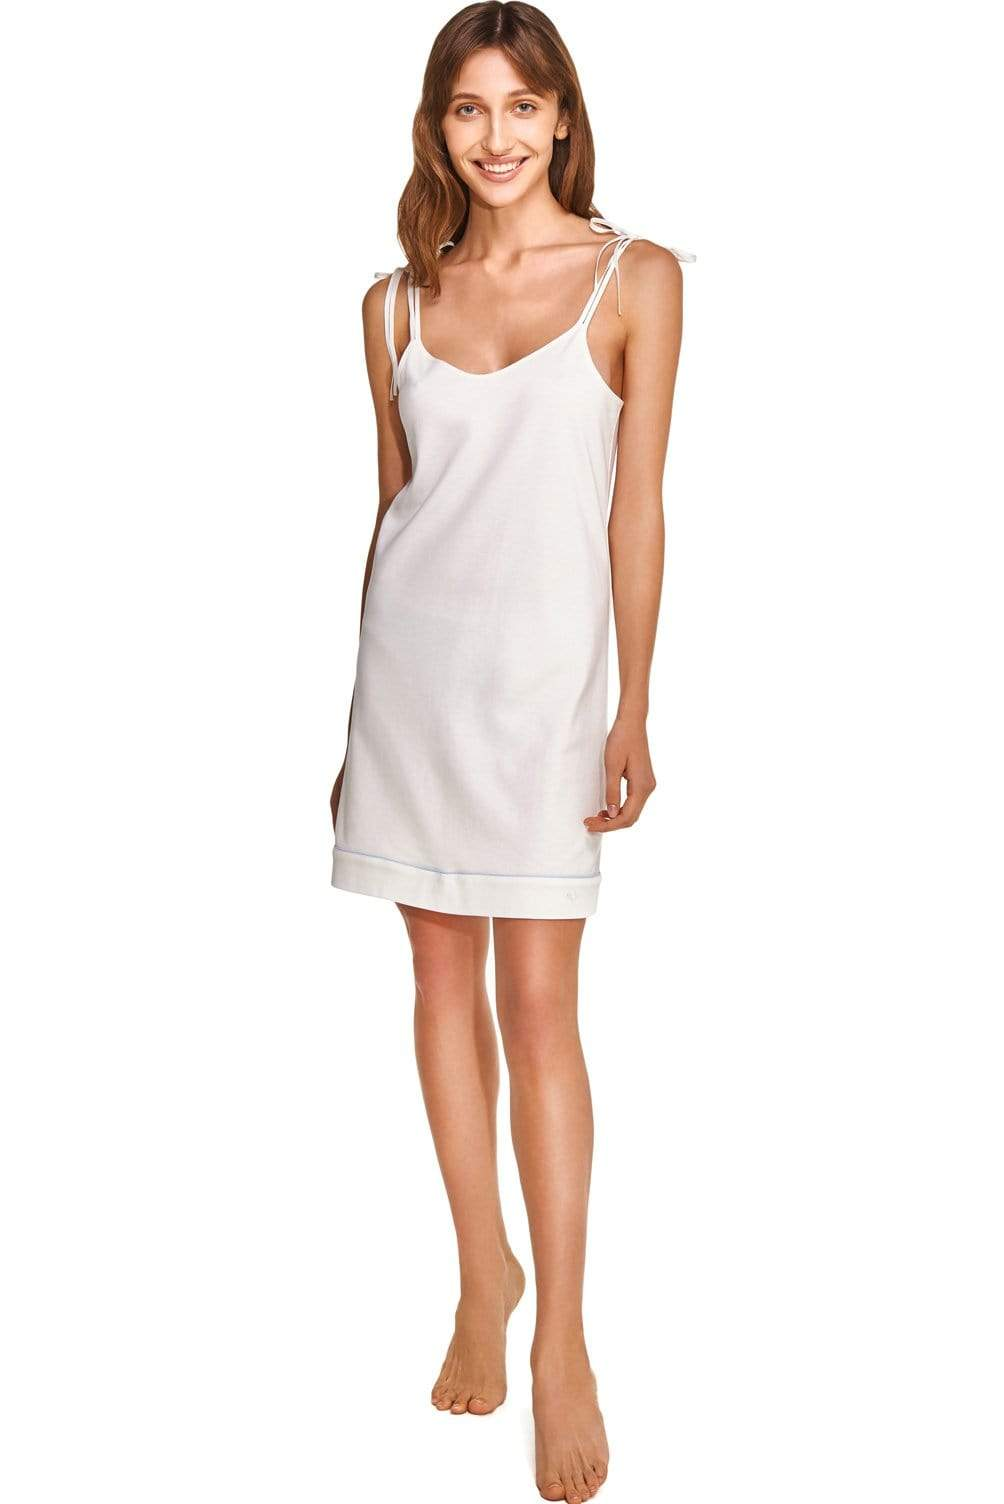 Slow Nature® Essentials Sleep & Loungewear Night Dress. Organic Cotton. sustainable fashion ethical fashion